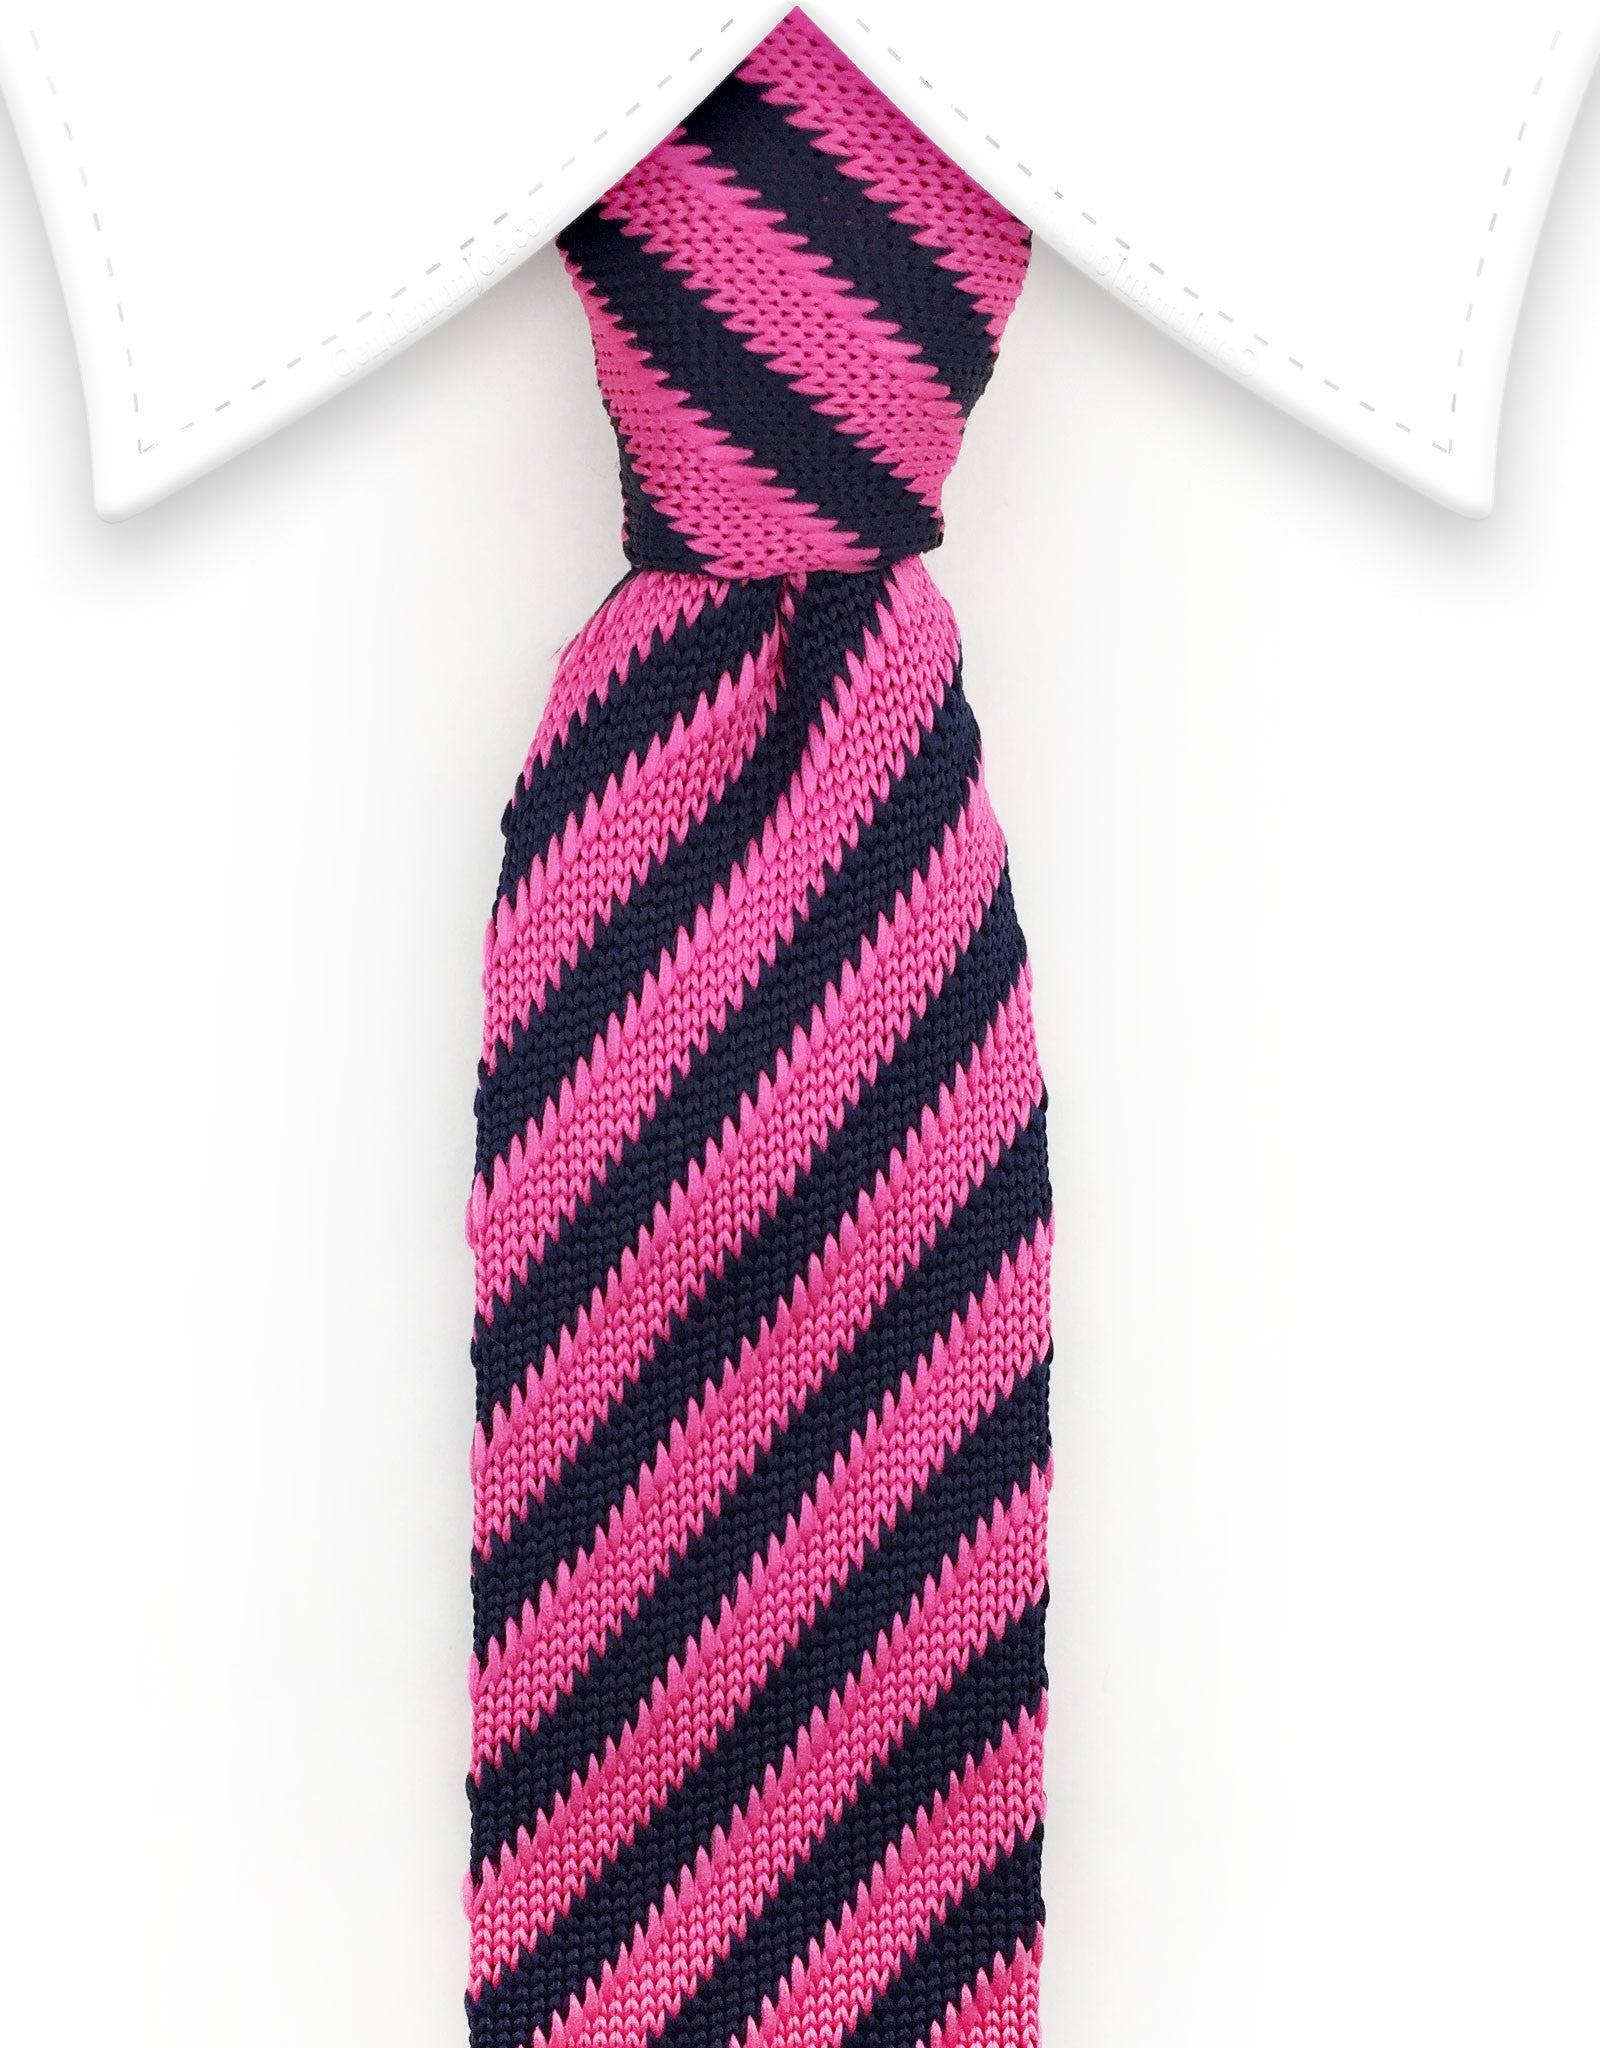 pink and black striped knitted necktie